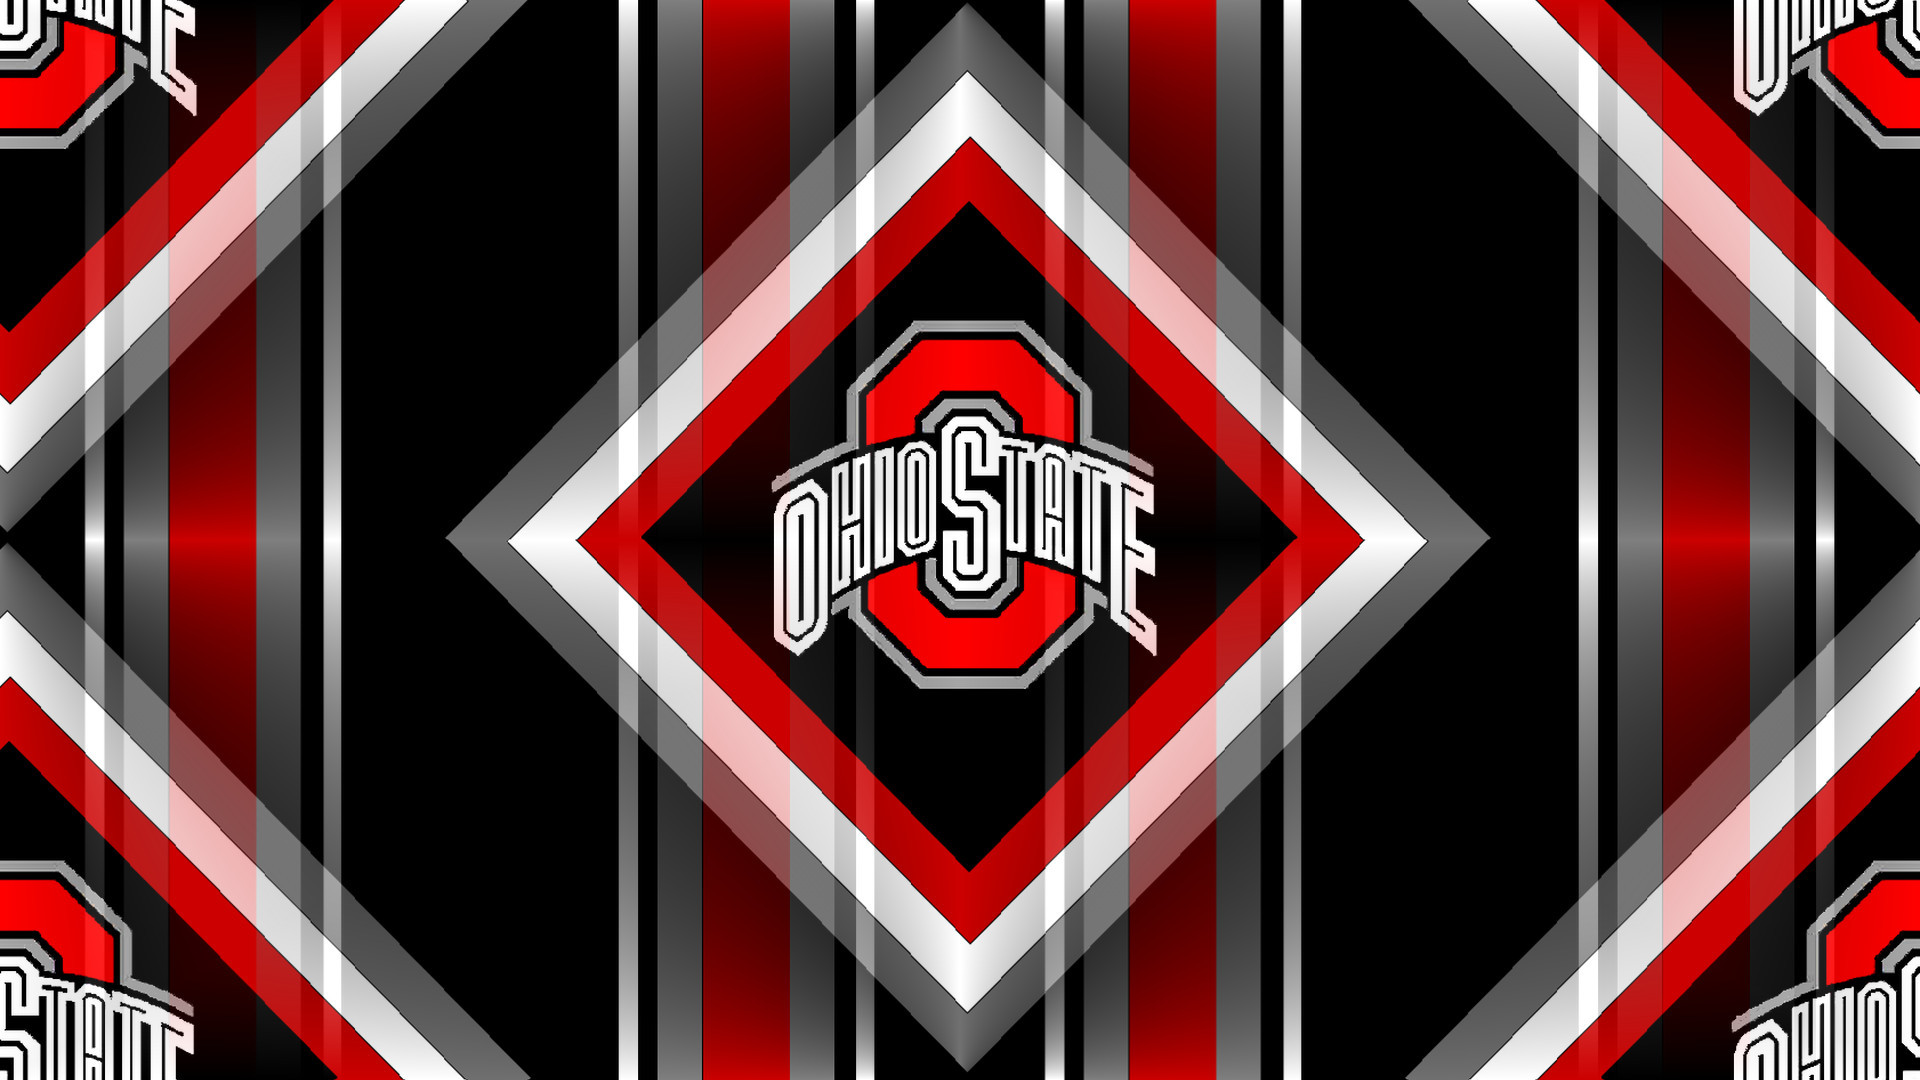 Ohio State wallpapers